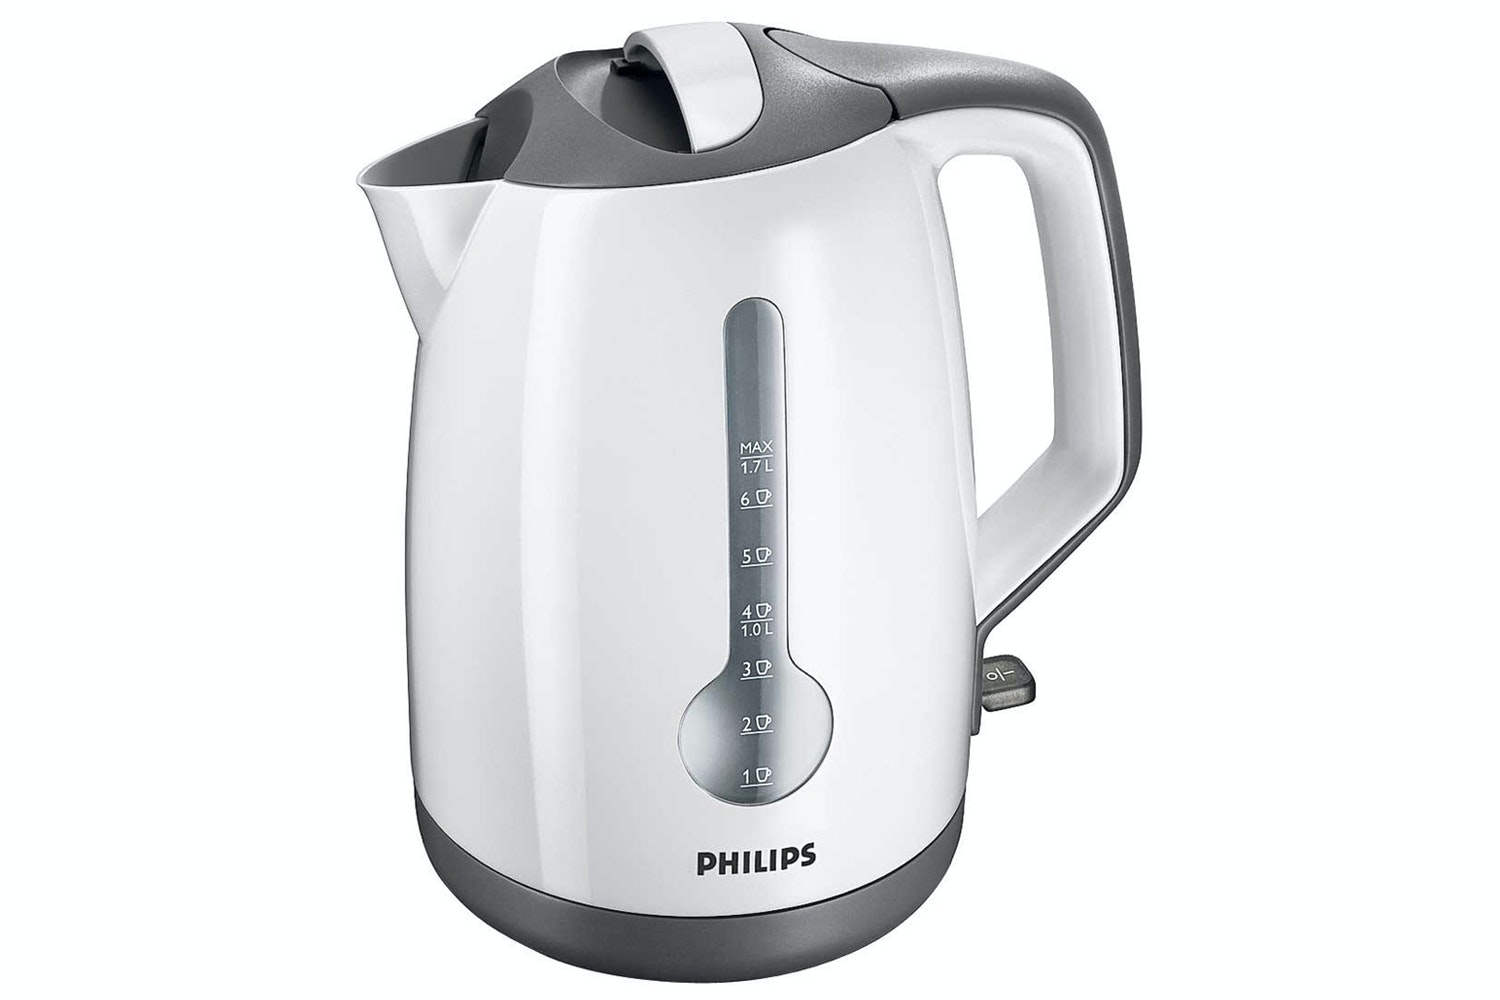 Philips 1.7L Electric Kettle | White